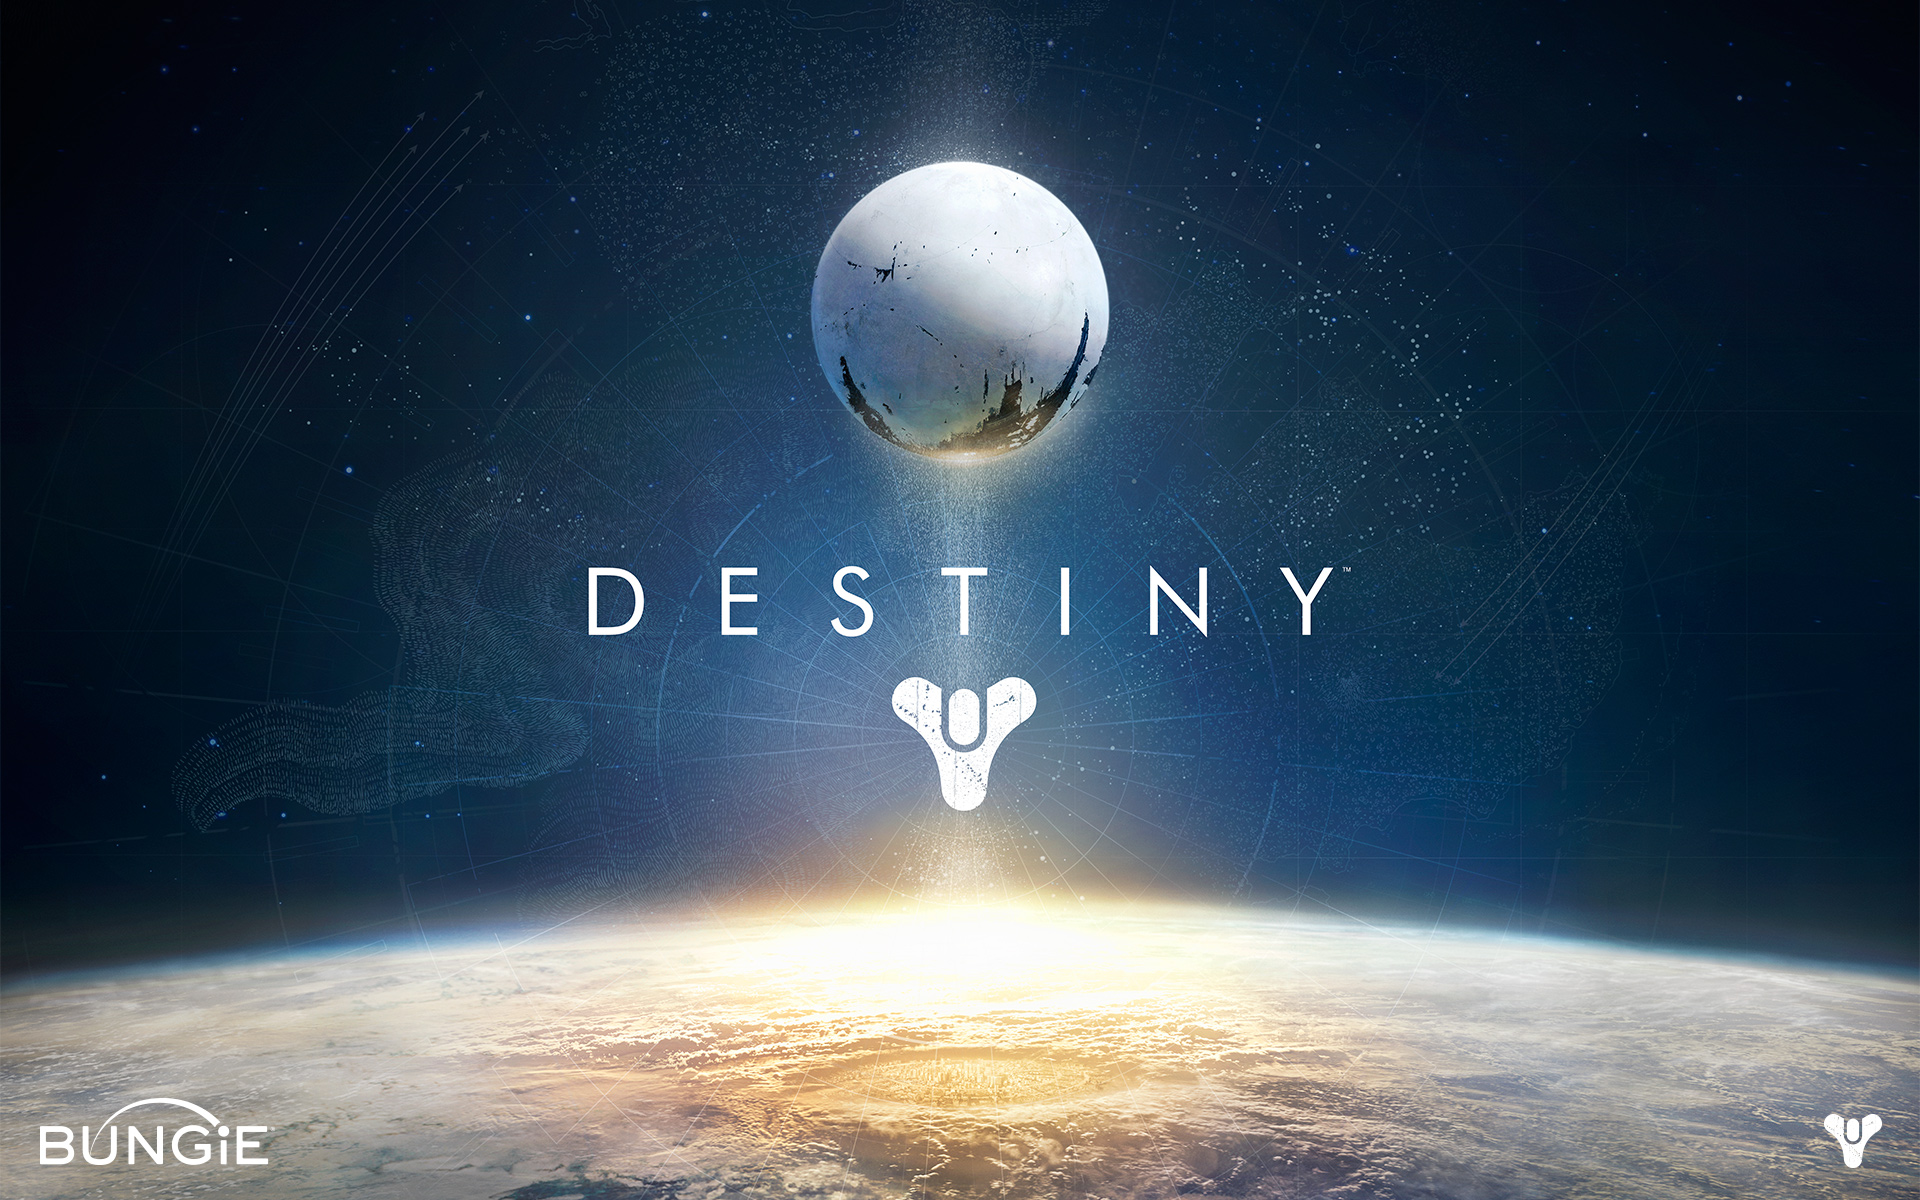 Destiny Update 1.0.3 Is Live, 2.5 GB of Fixes